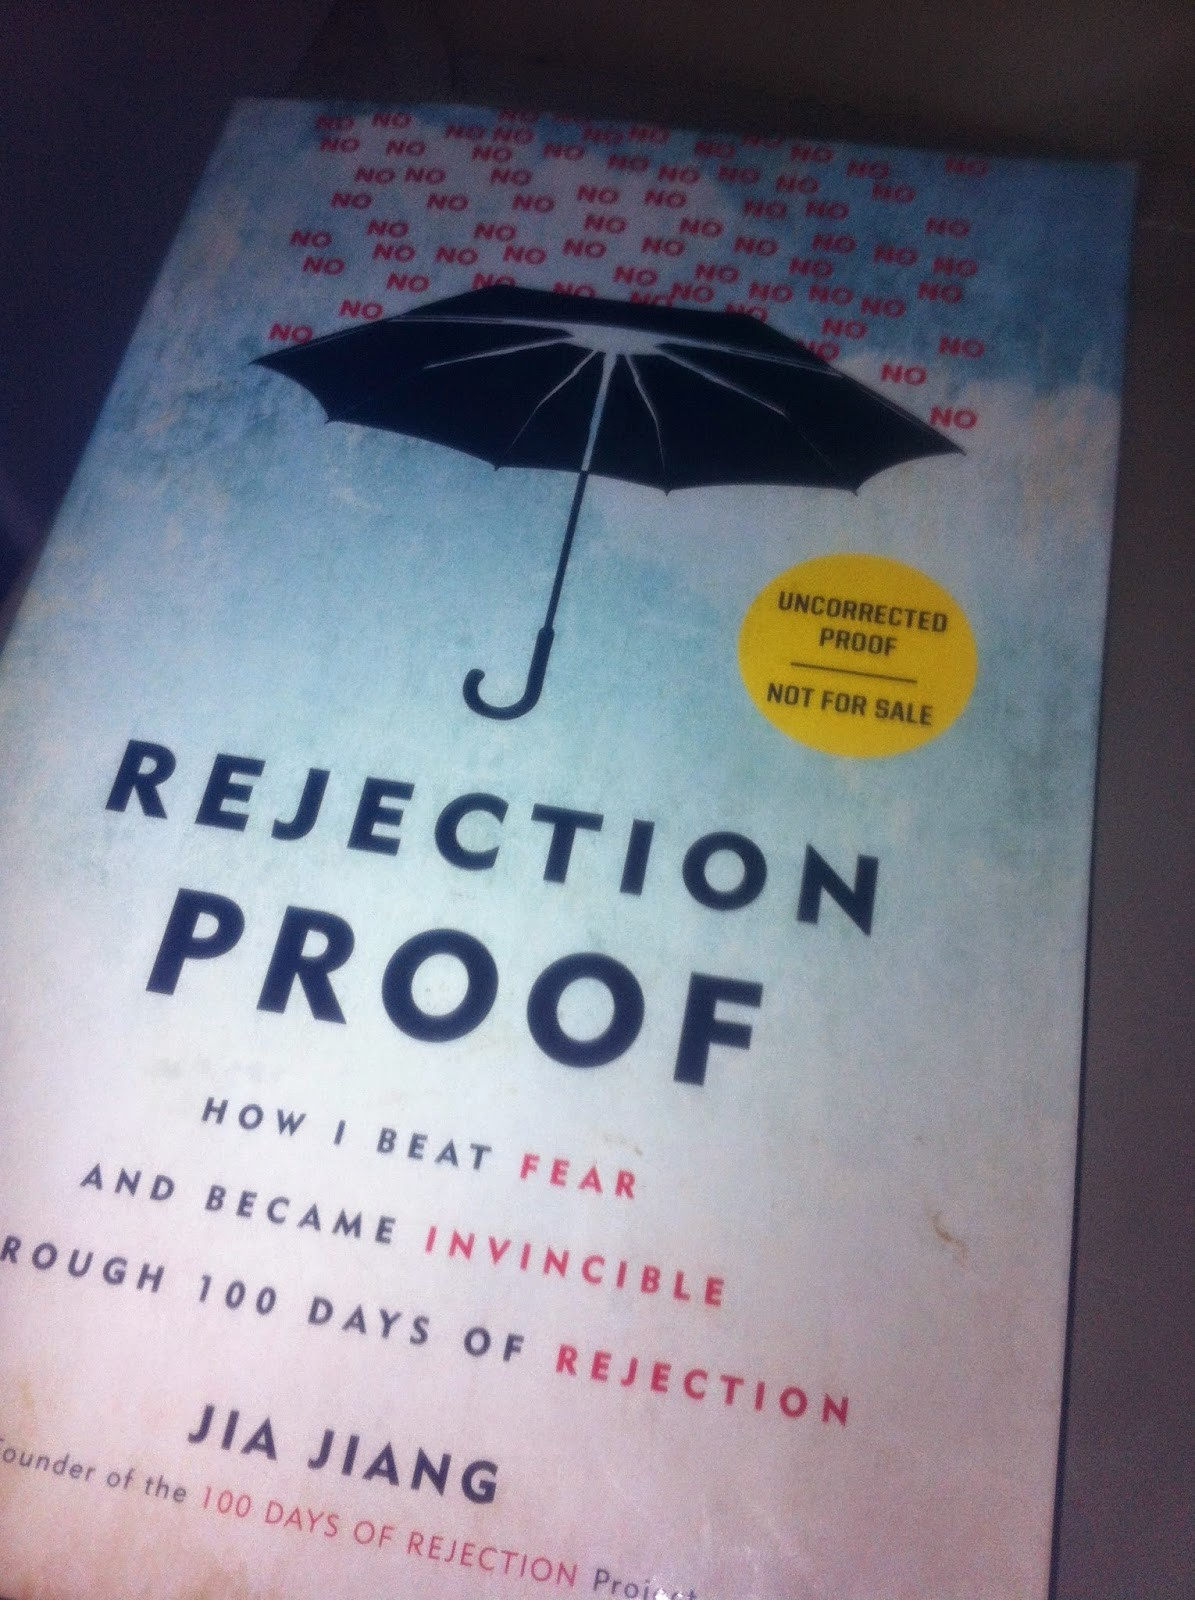 Book Review: Rejection Proof, by Jia Jang